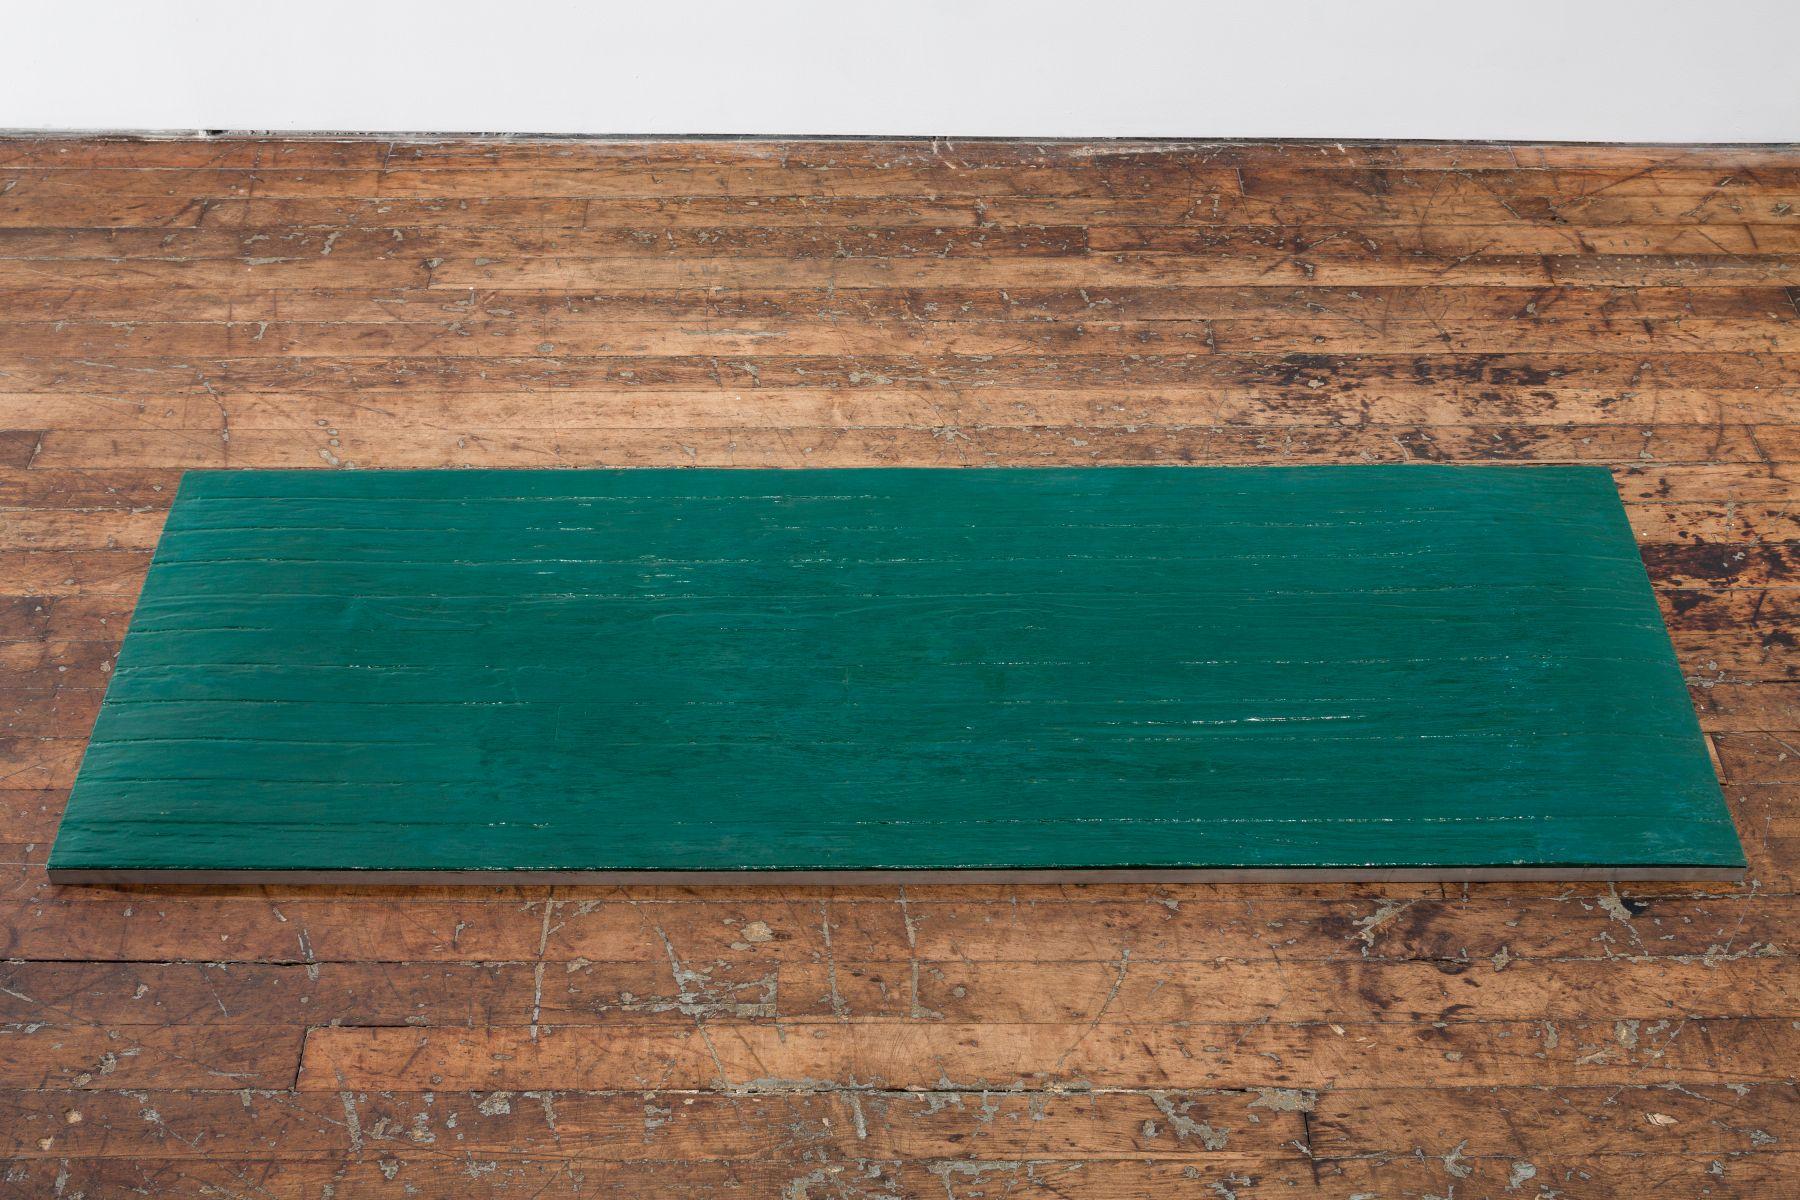 Untitled (Green Plank), 1966